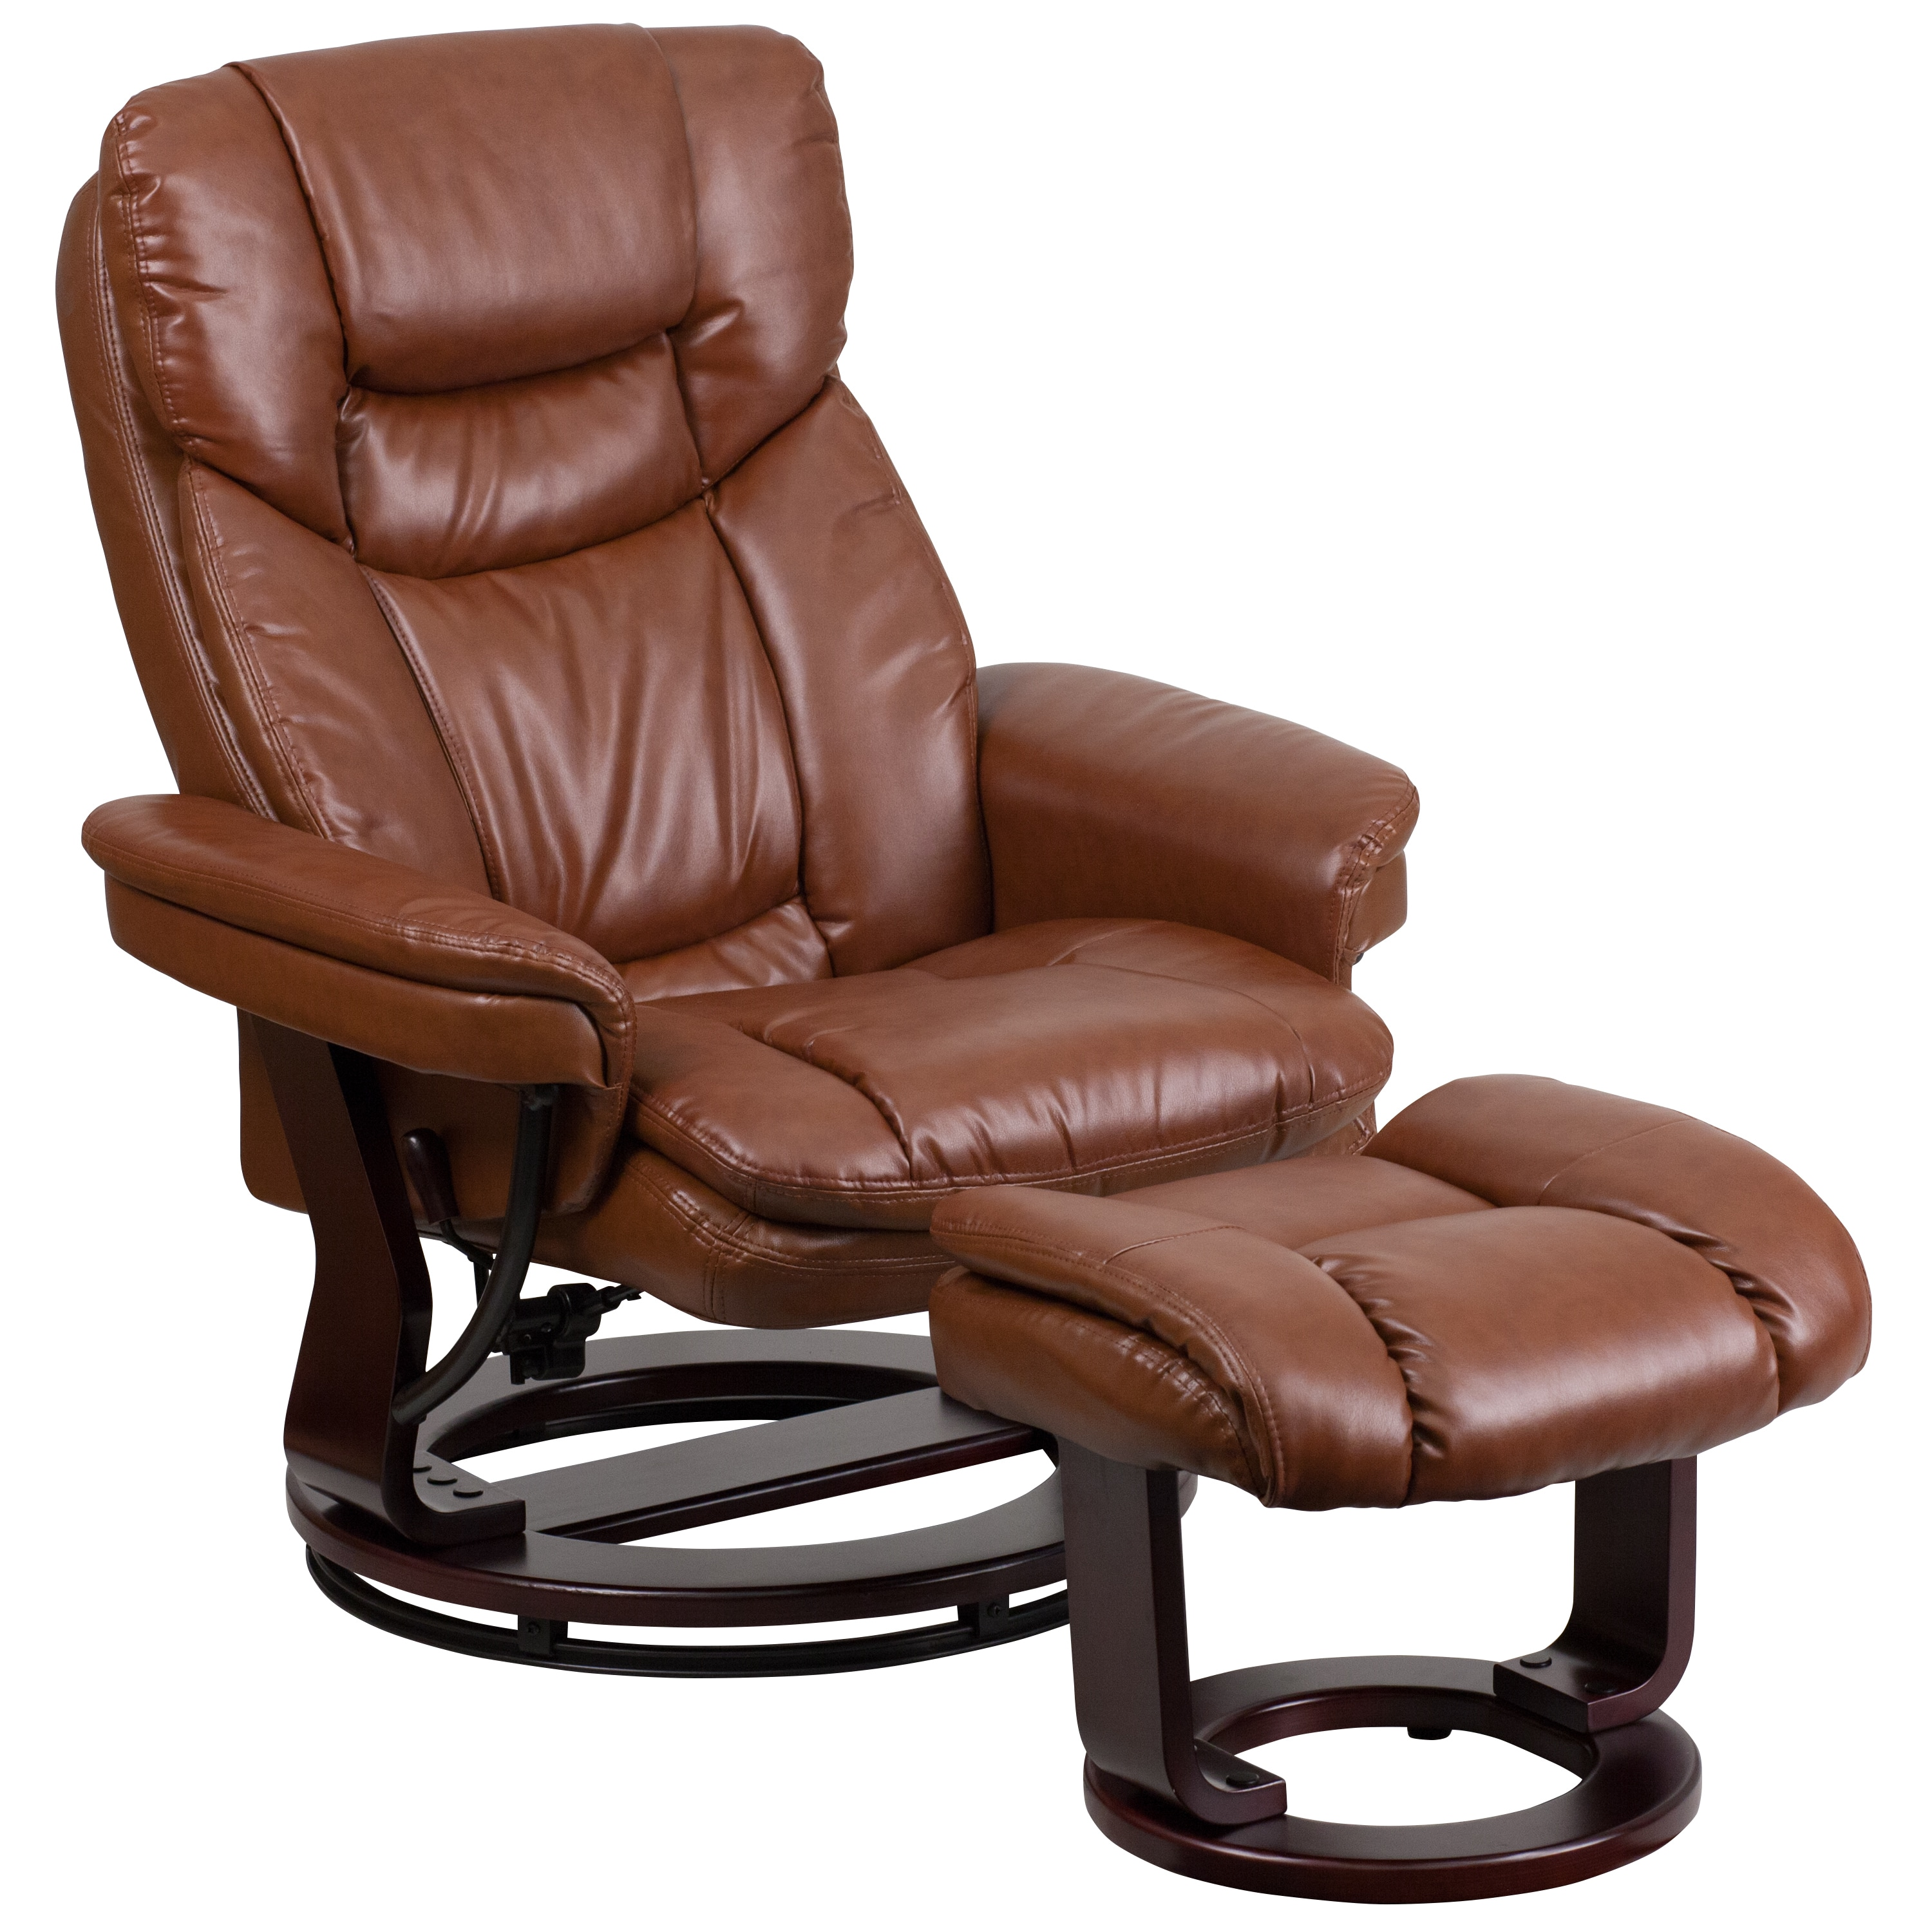 Clay Alder Home Mackinac Leather Recliner With Ottoman